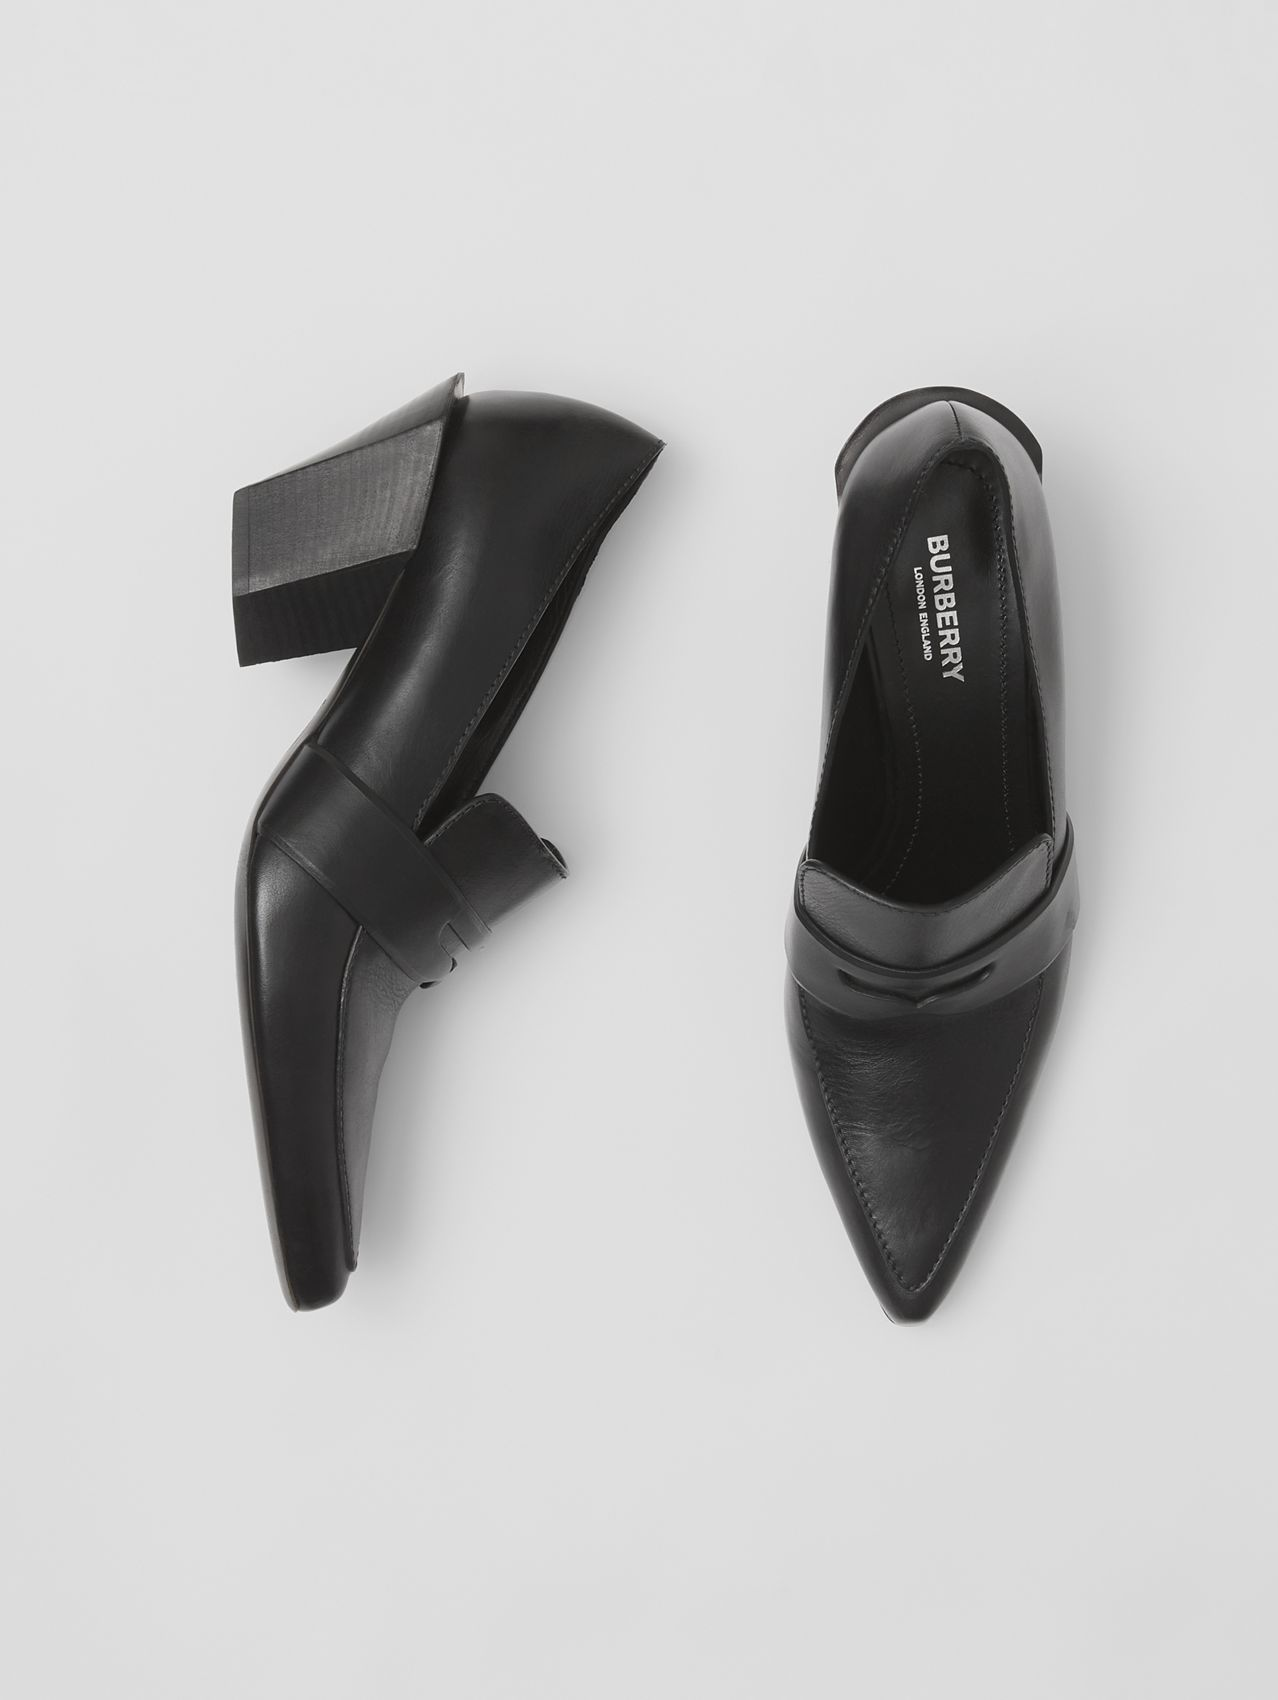 Burberry pointed toe loafers